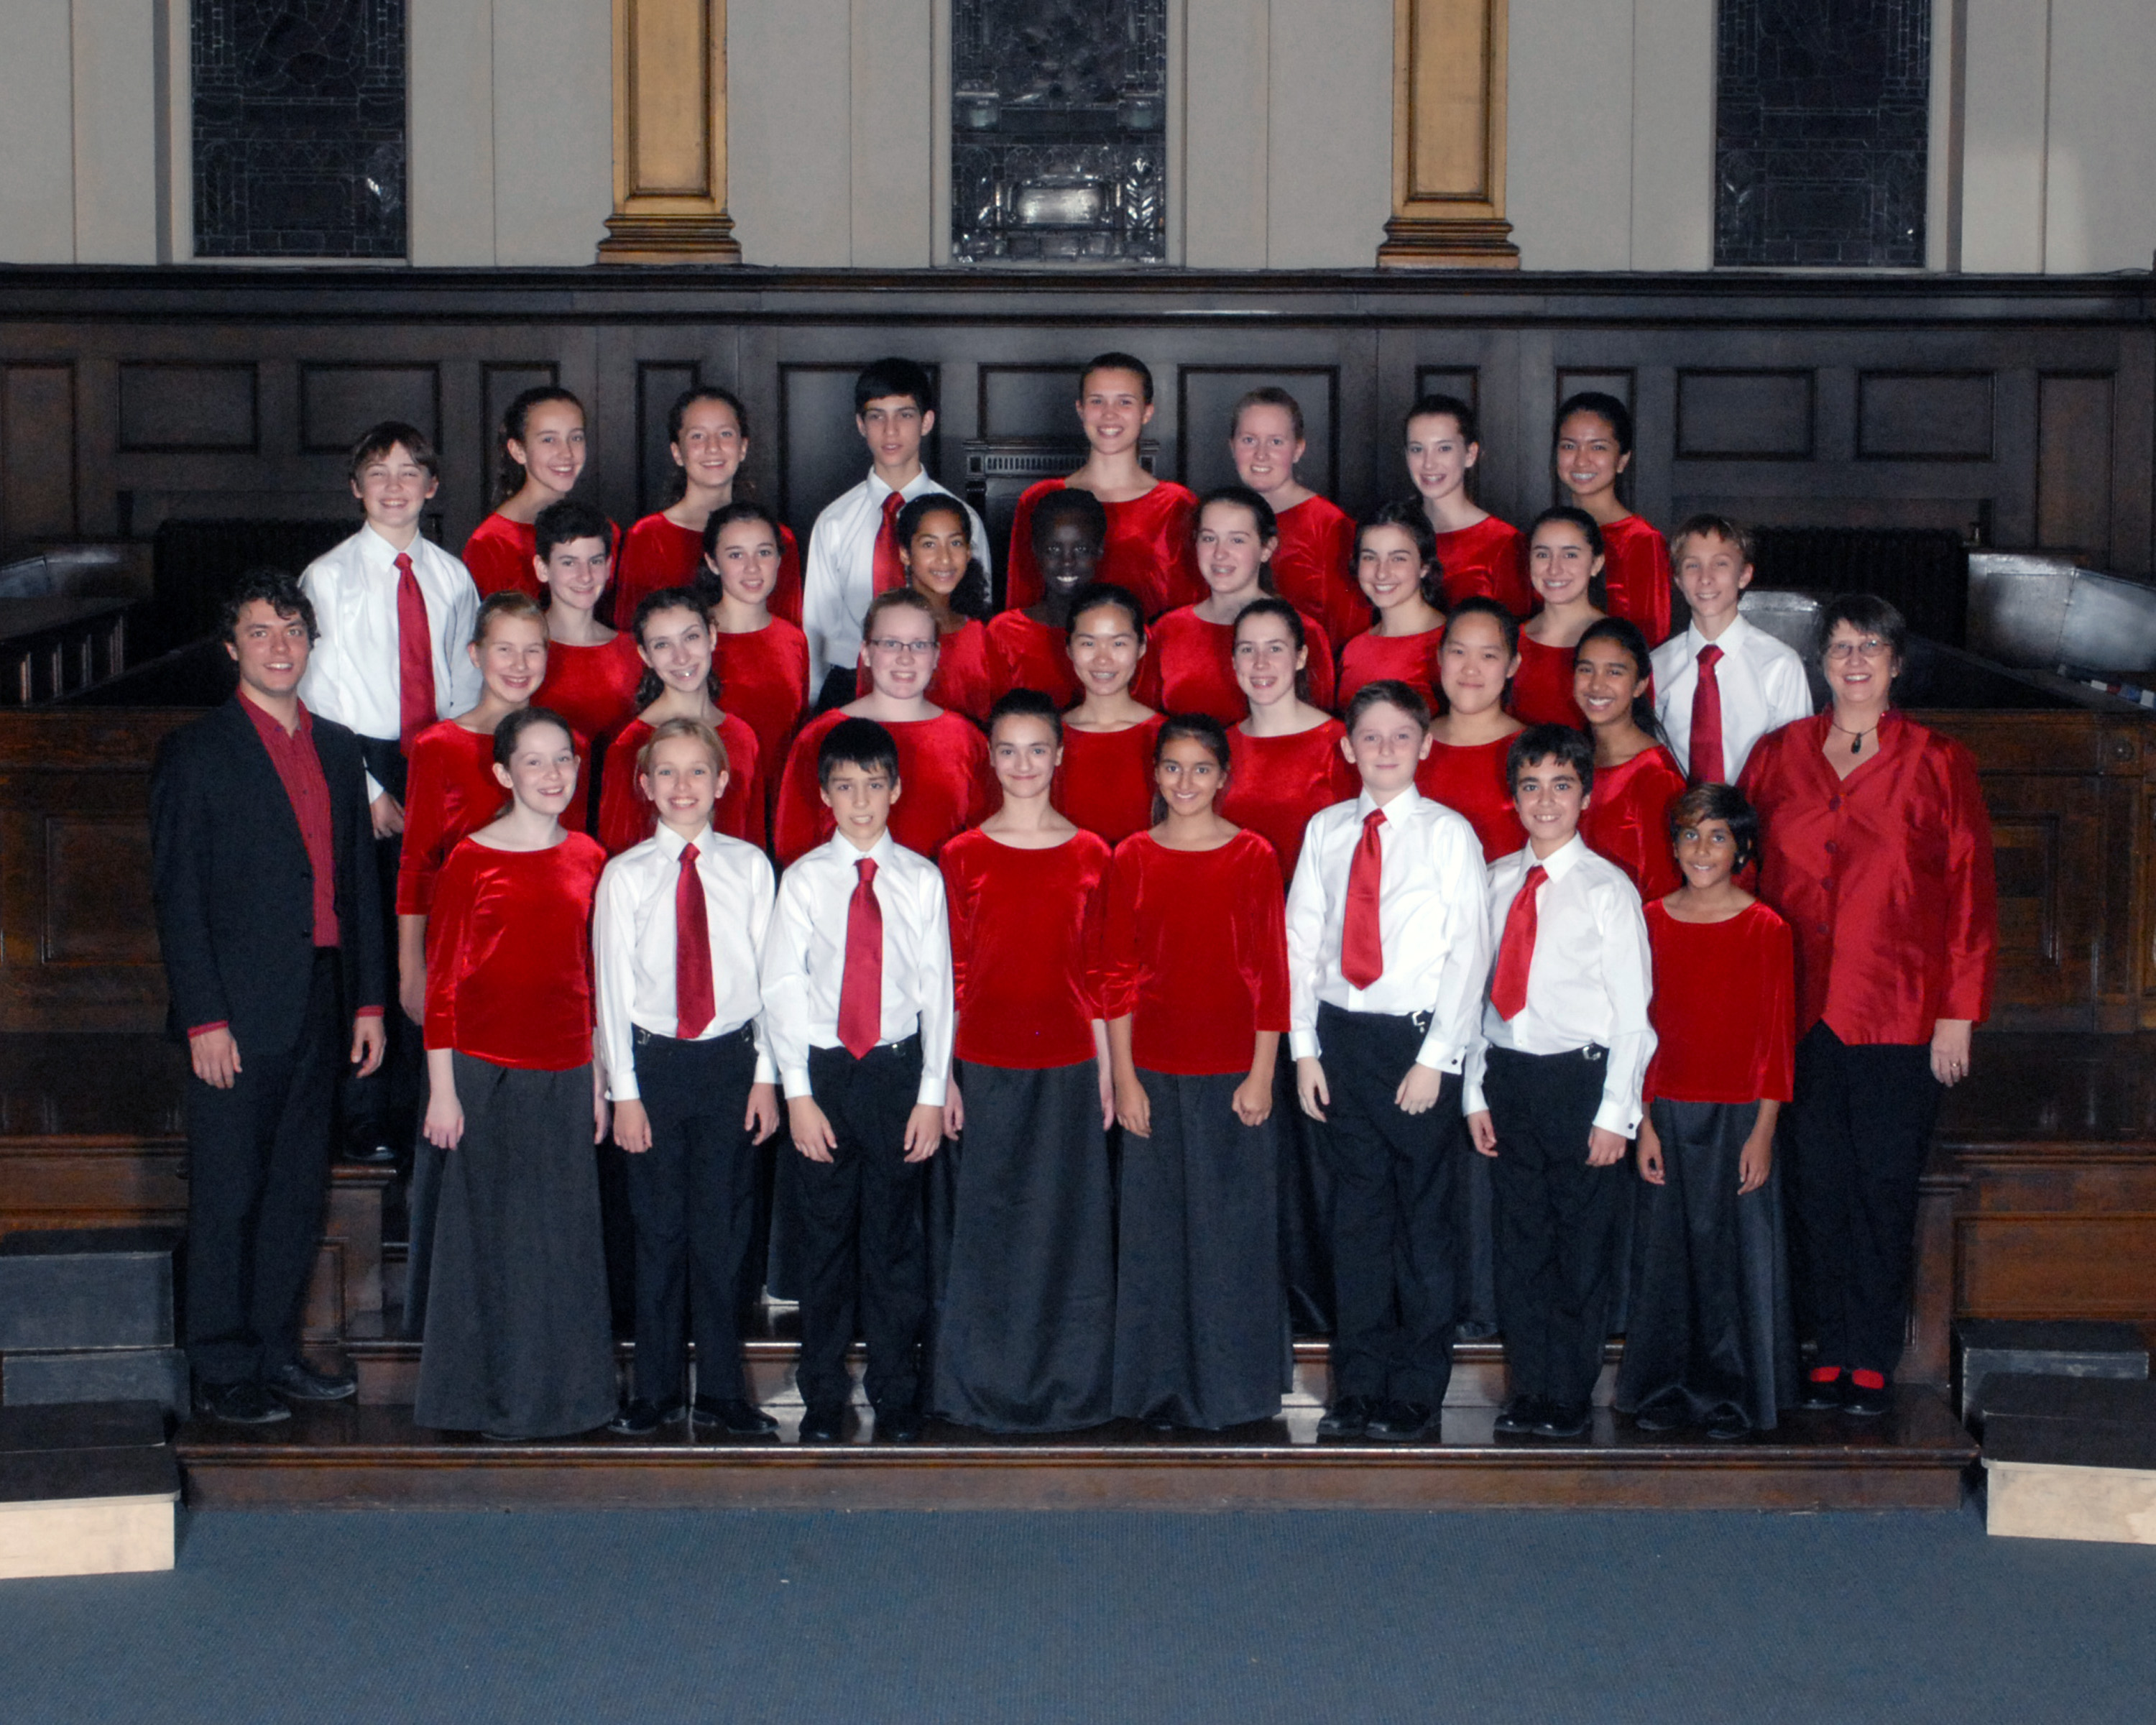 Toronto Children's Choir